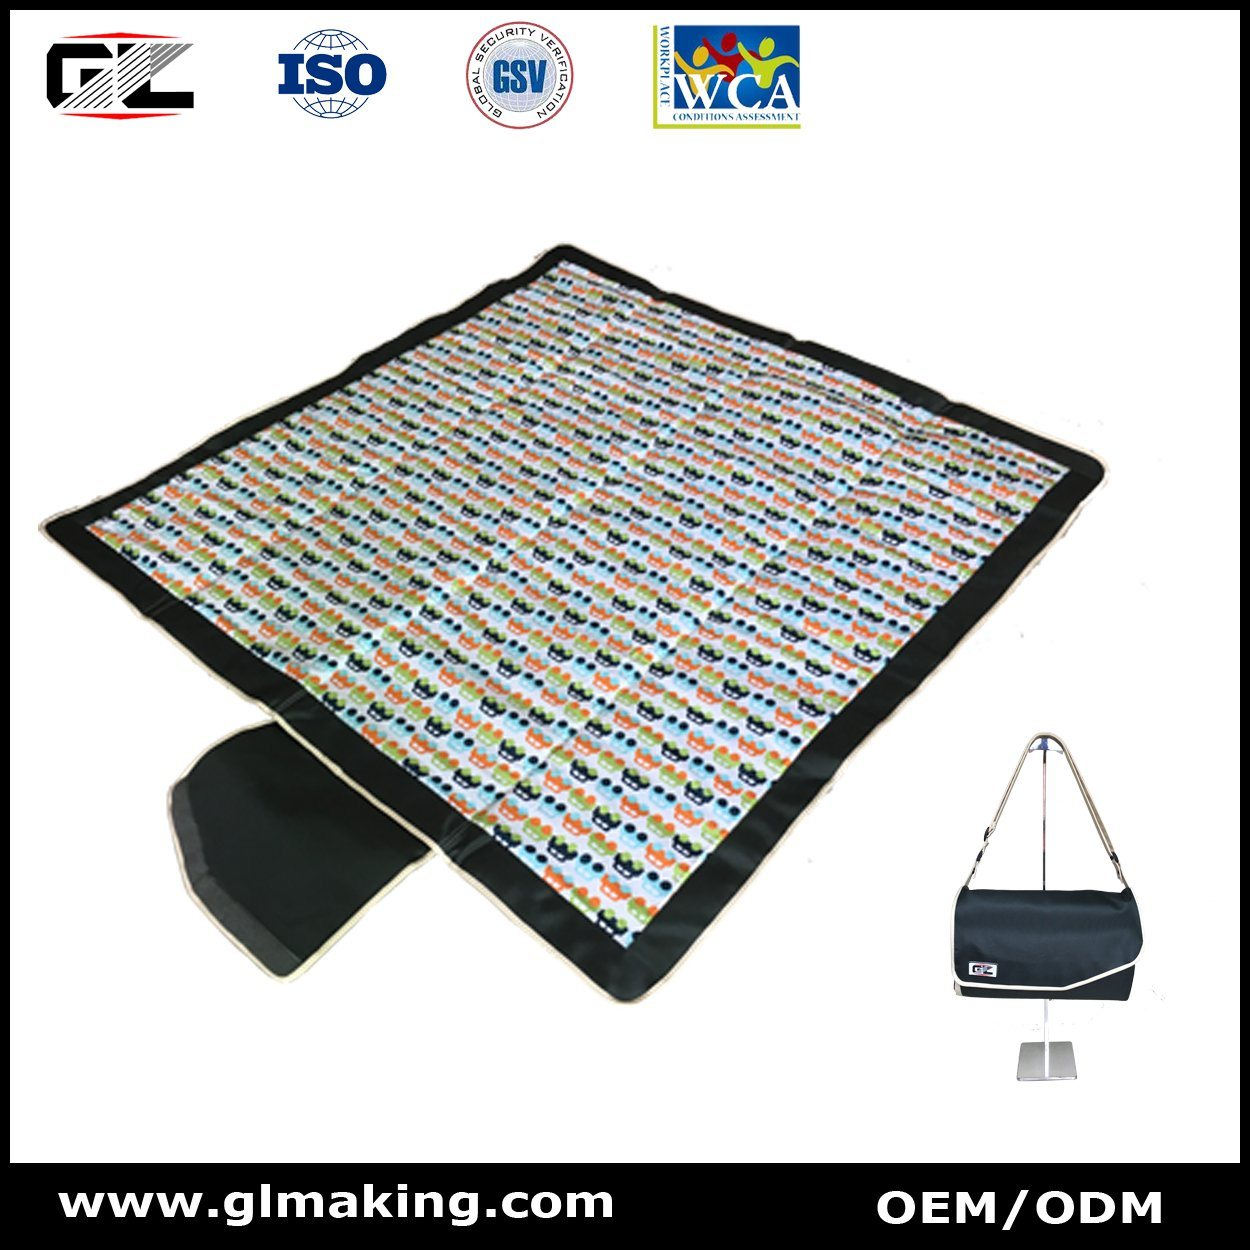 Glmat01 - Picnic Mat with Pattern From Manufacturer